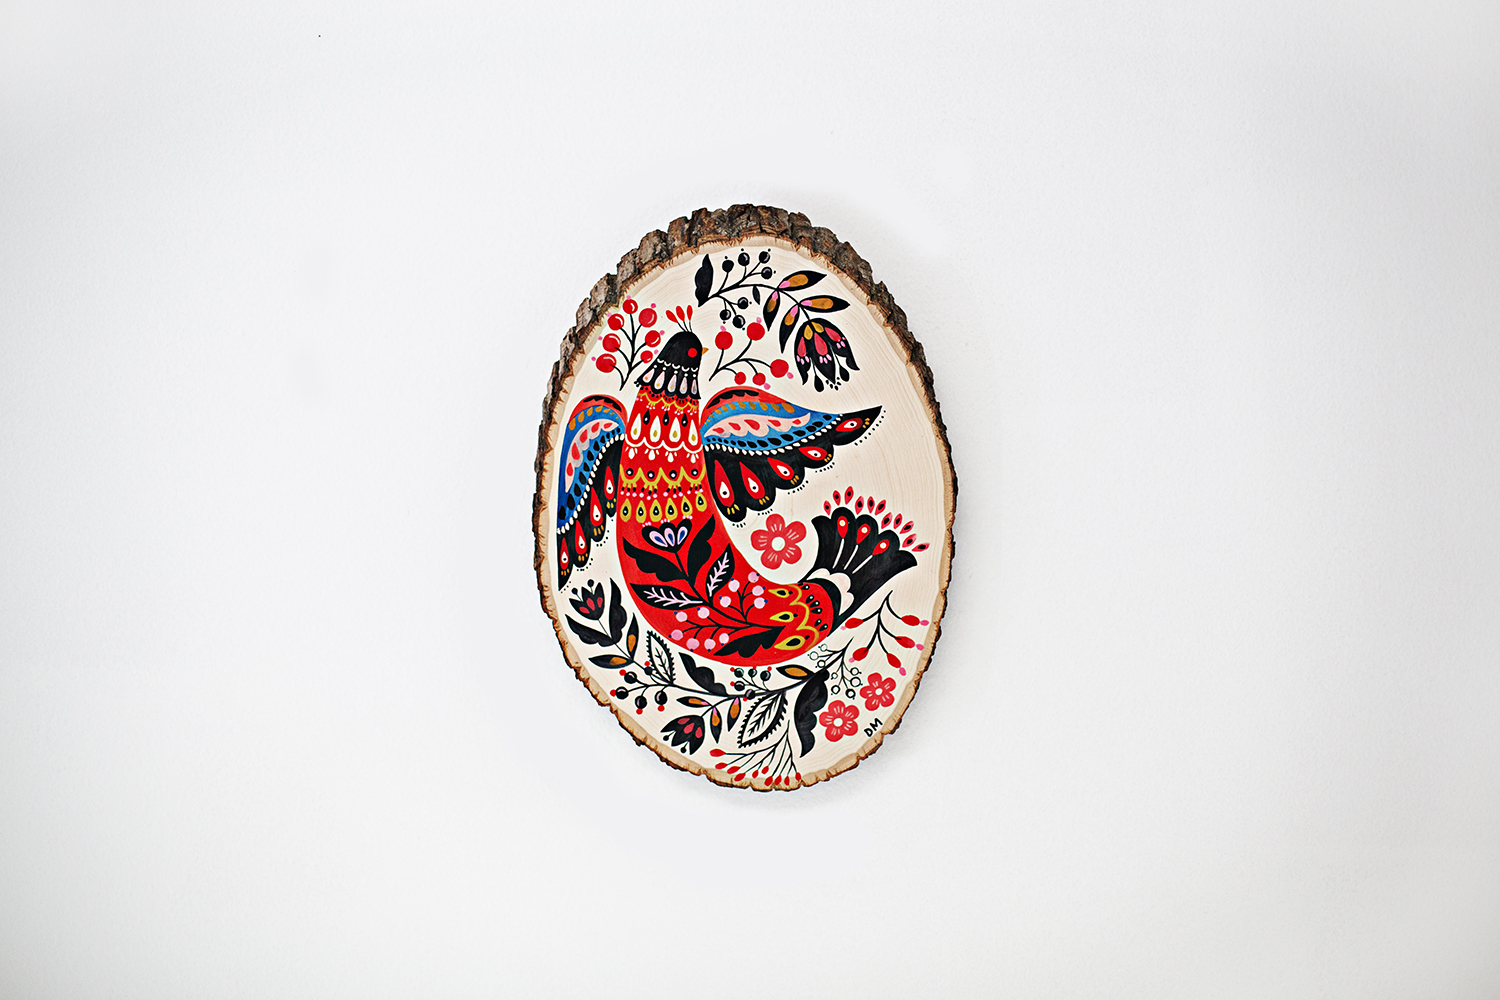 Dinara Mirtalipova Bird on Wood No1 B 72.jpg